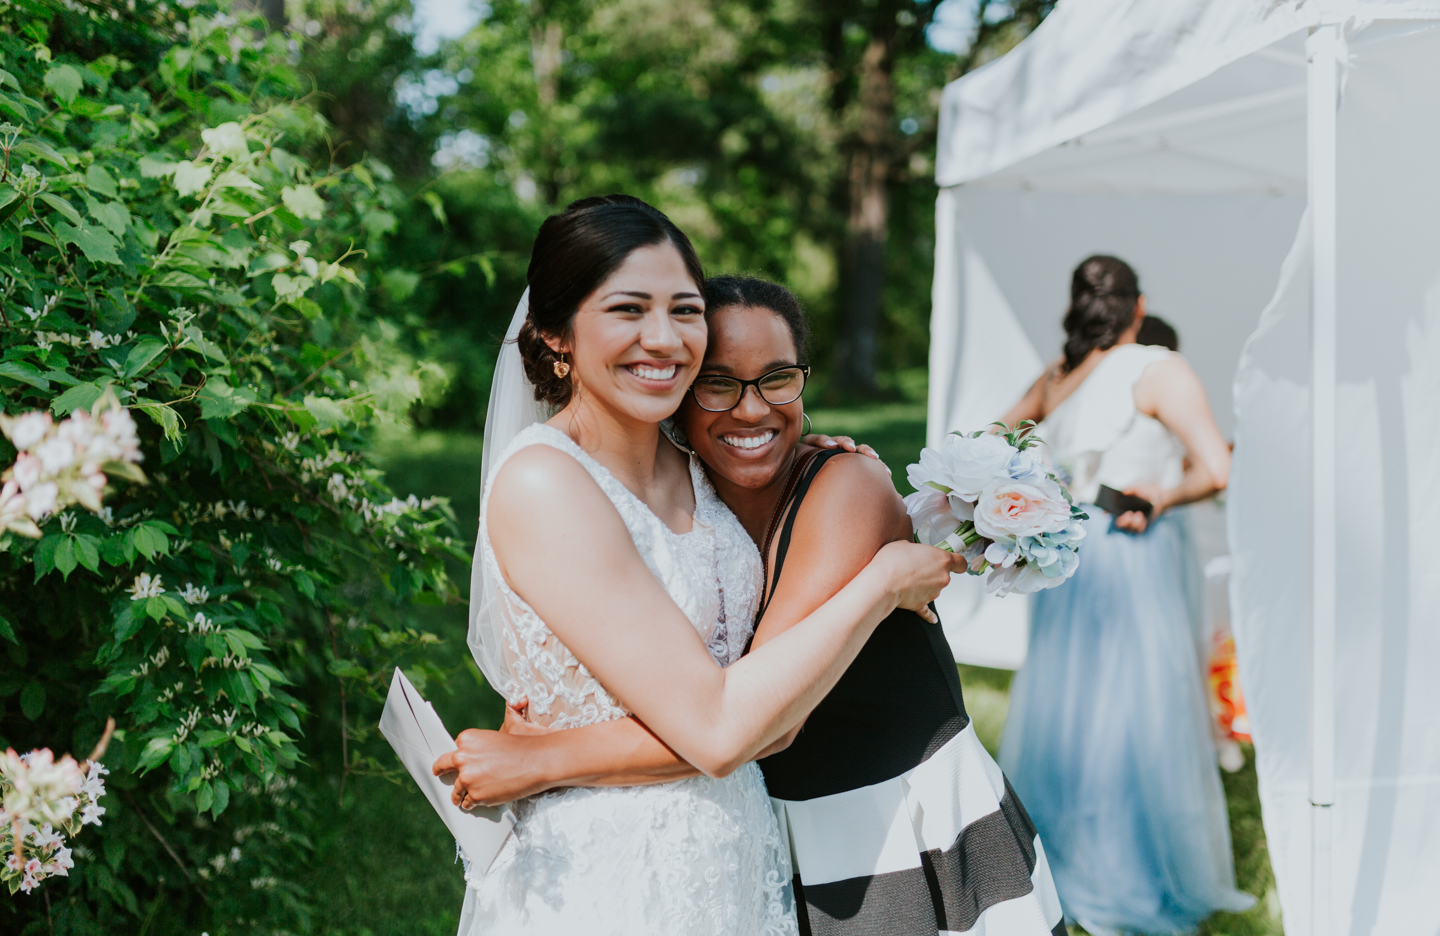 lola-grace-photography-taylor-botanical-gardens-wedding-14.jpg